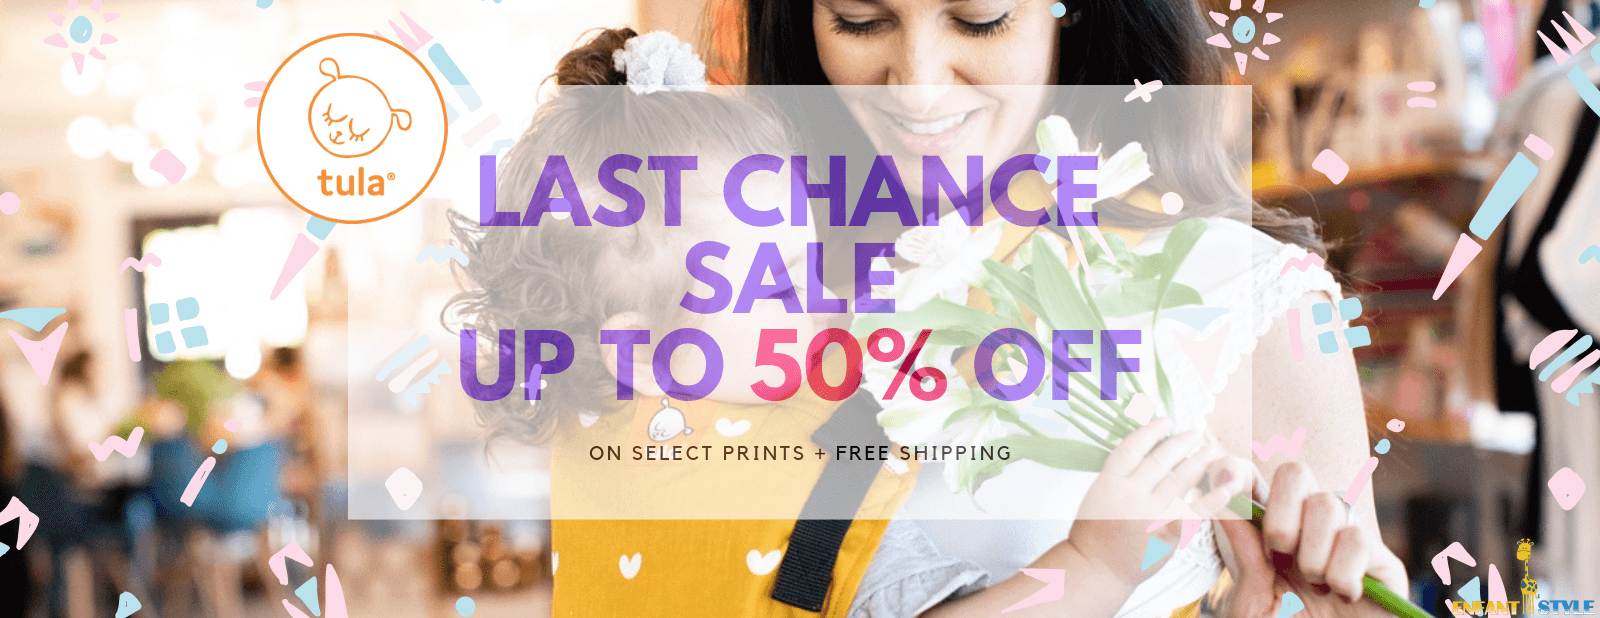 tula baby carrier sale at Enfant Style